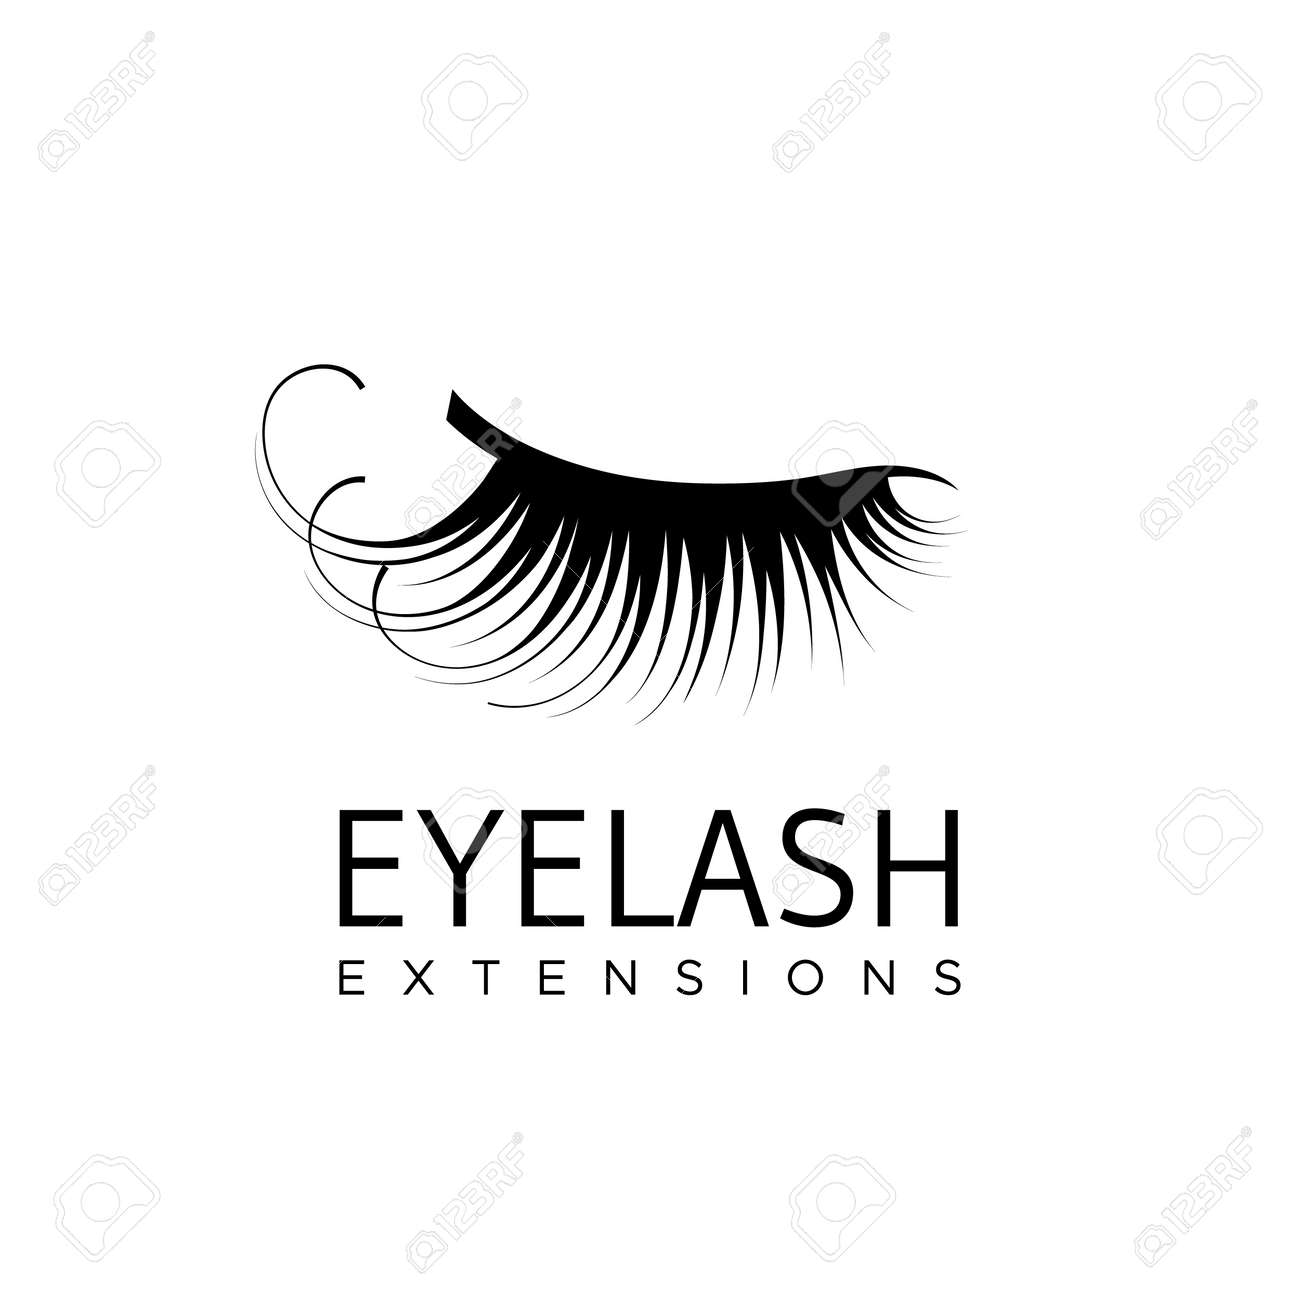 7547deae8ce Eyelash extension logo with closed eye with long lashes. Vector  illustration in a modern style